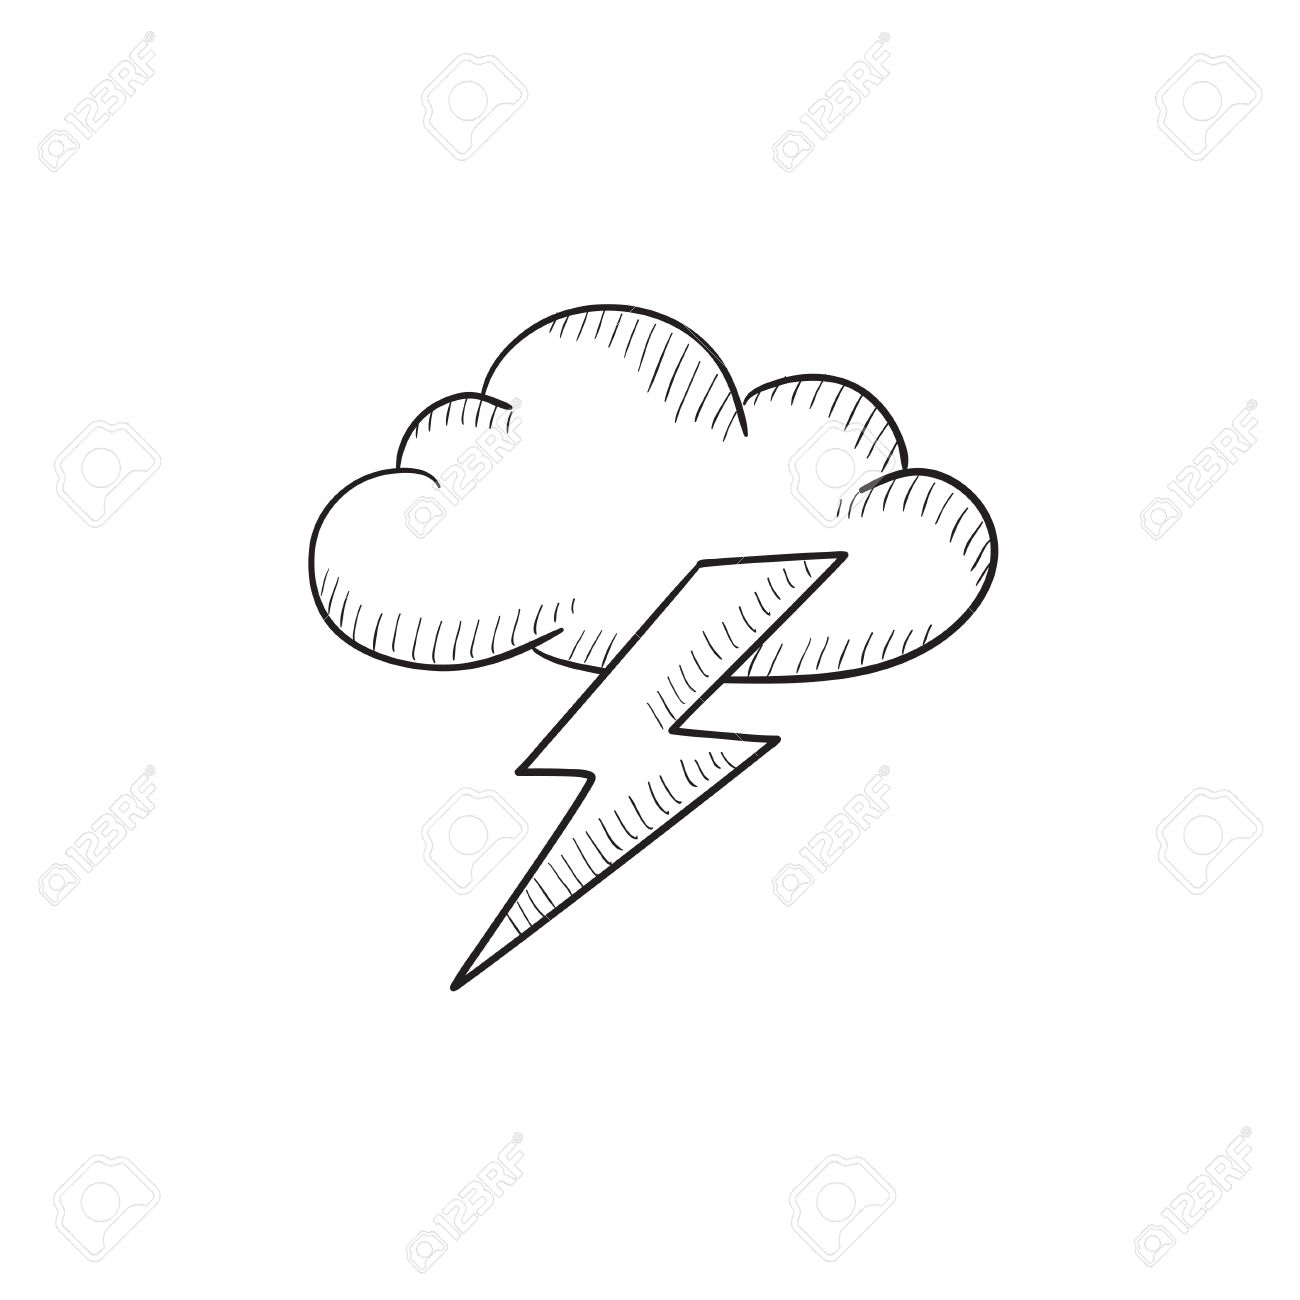 Cloud And Lightning Bolt Vector Sketch Icon Isolated On Background Royalty Free Cliparts Vectors And Stock Illustration Image 57823629